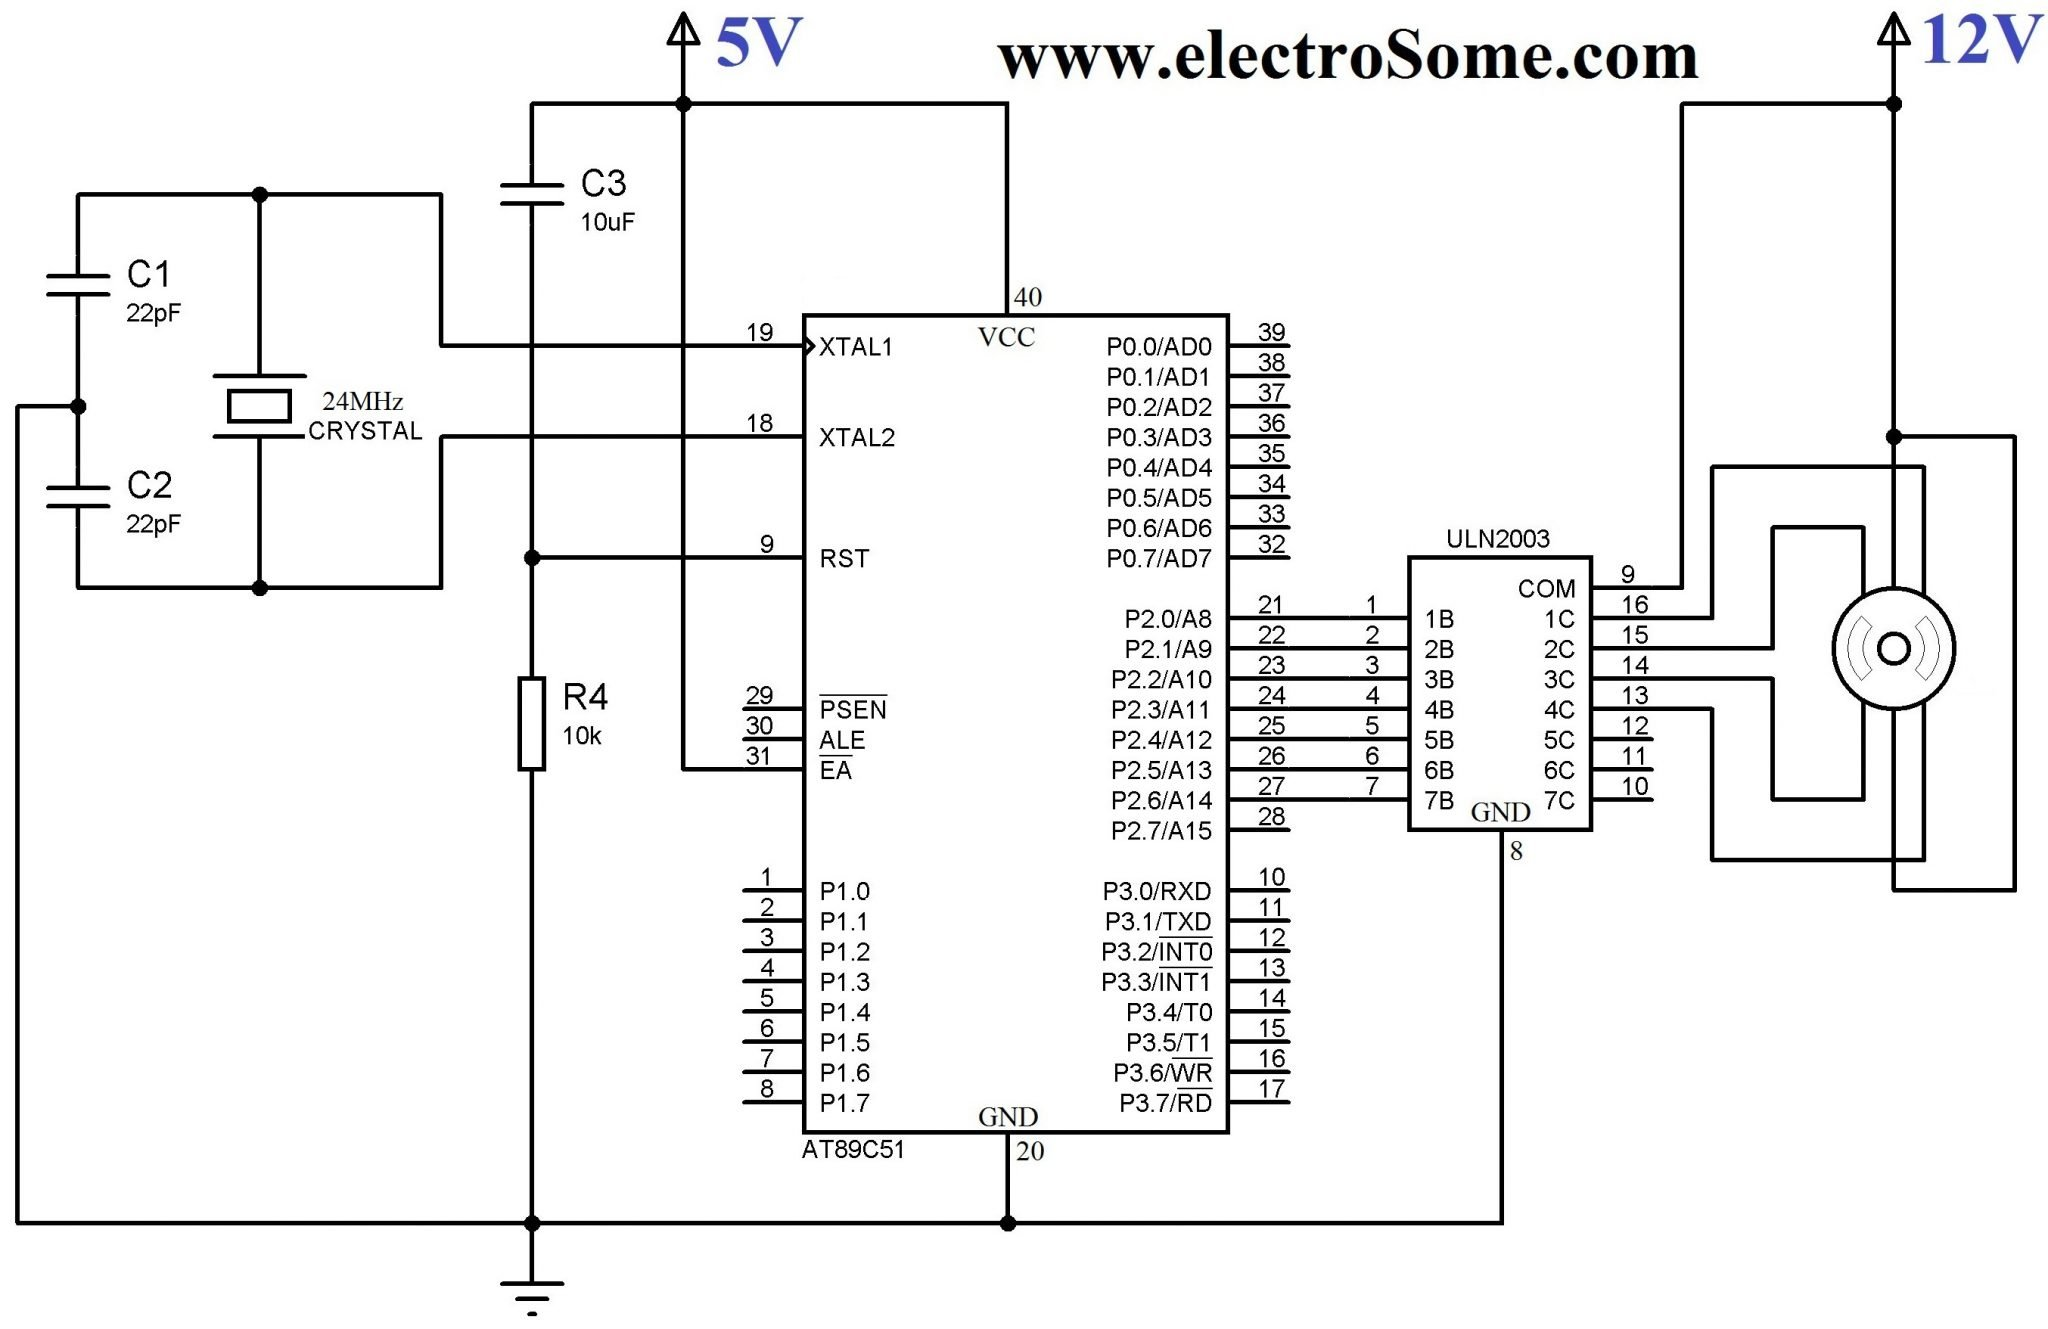 240 volt motor wiring diagram wiring diagram and schematic design house wiring diagram pool timer wh 40 240